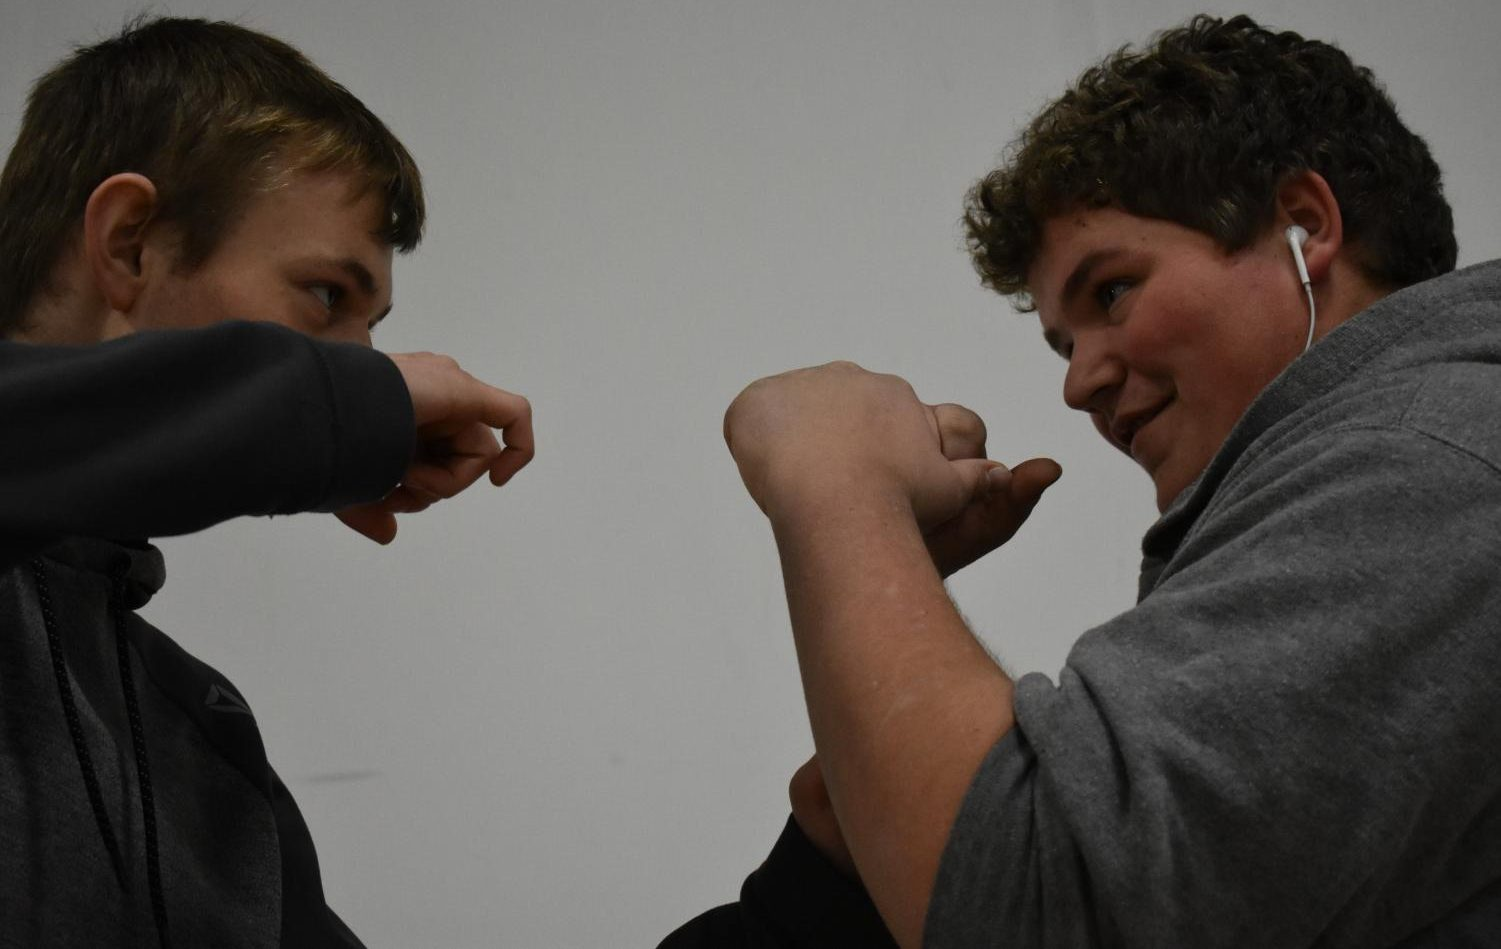 Two SLHS students prepare to practice boxing, inspired by Creed II.